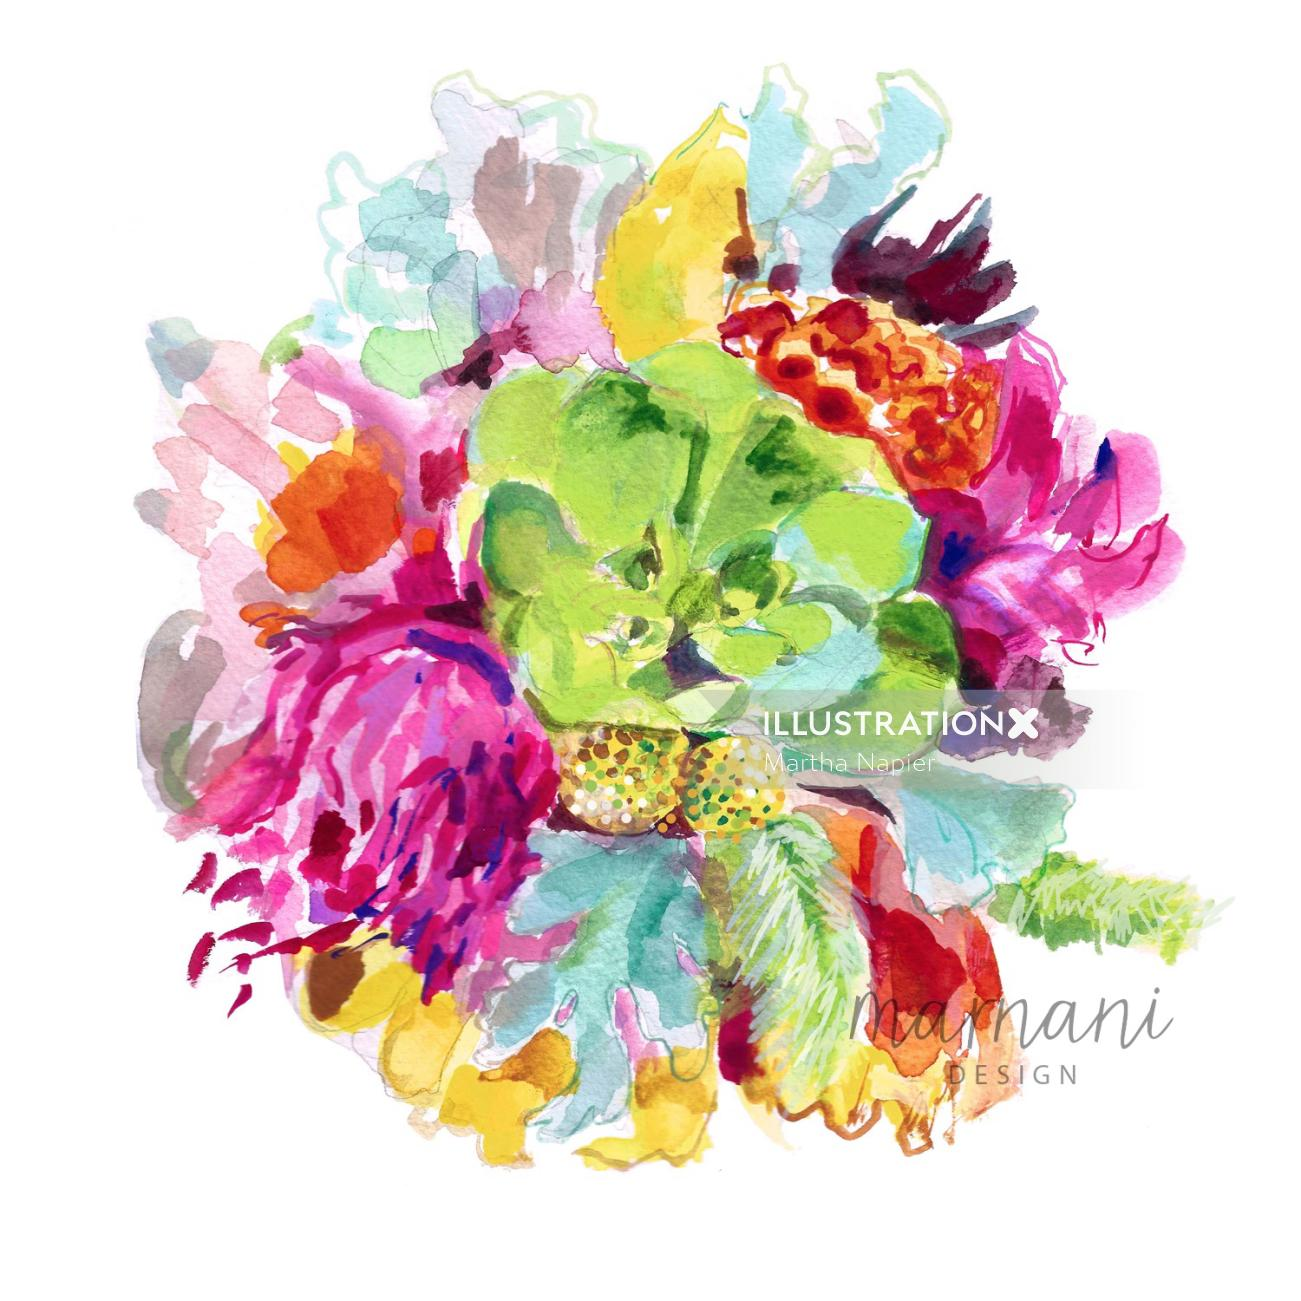 Floral, Tropical, Colorful, Bright, Whimsical, Flower Arrangement